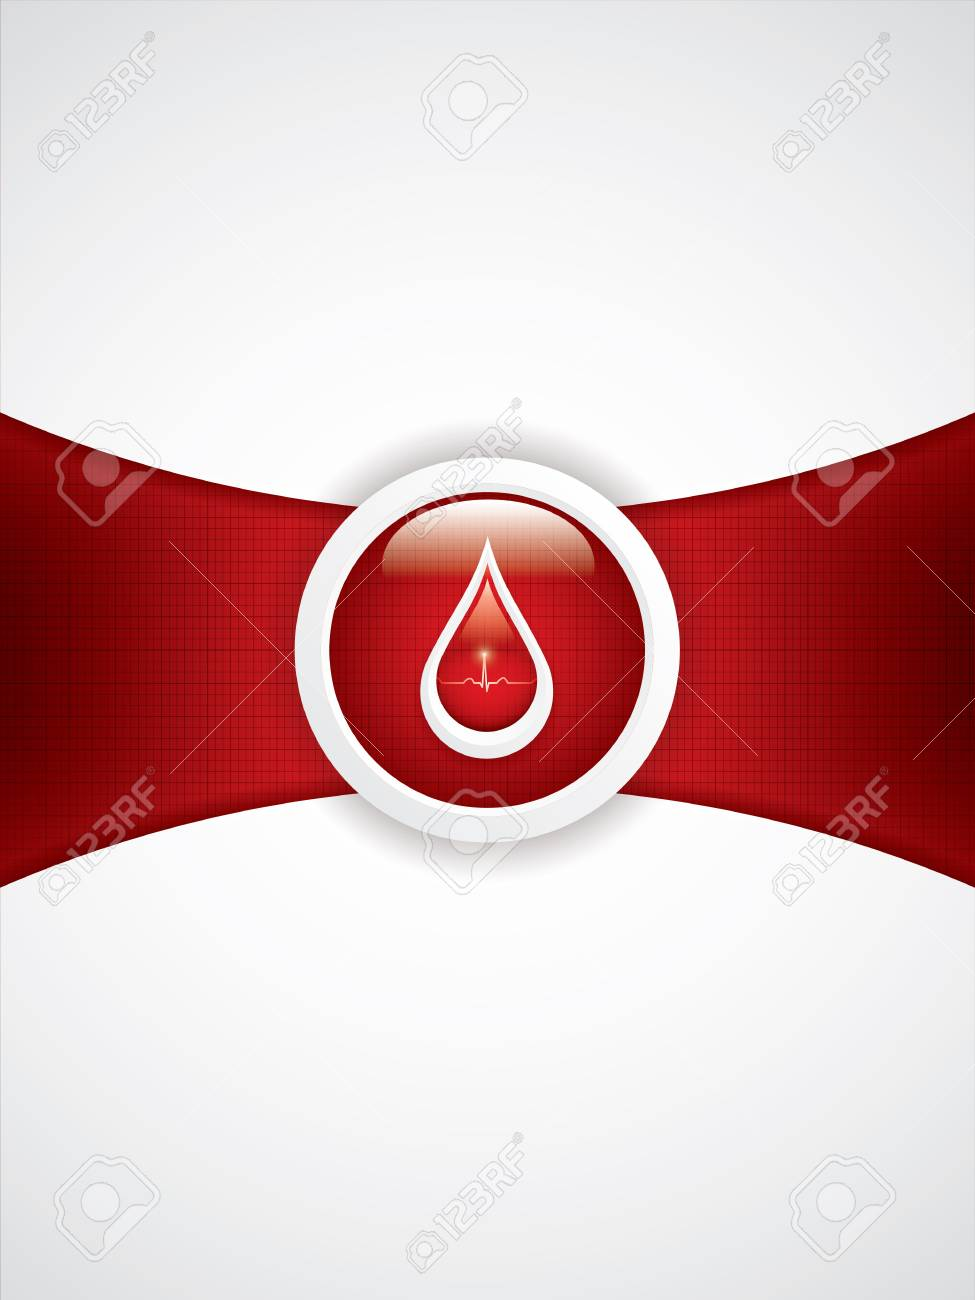 Blood donation vector Medical background Stock Vector - 18653923